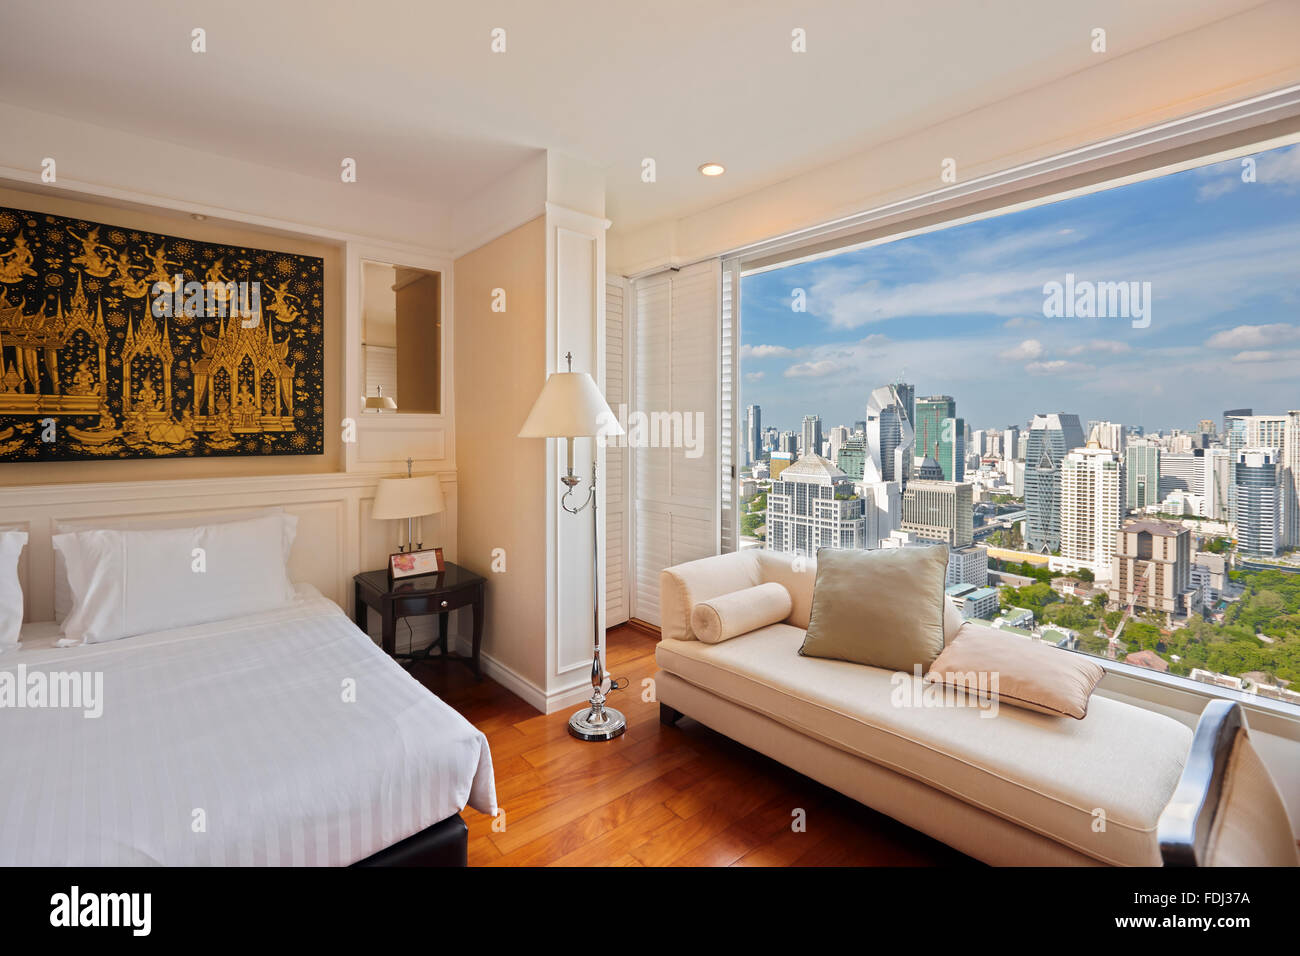 Room with a view over the city in the Grande Centre Point Hotel Ratchadamri. Bangkok, Thailand. - Stock Image